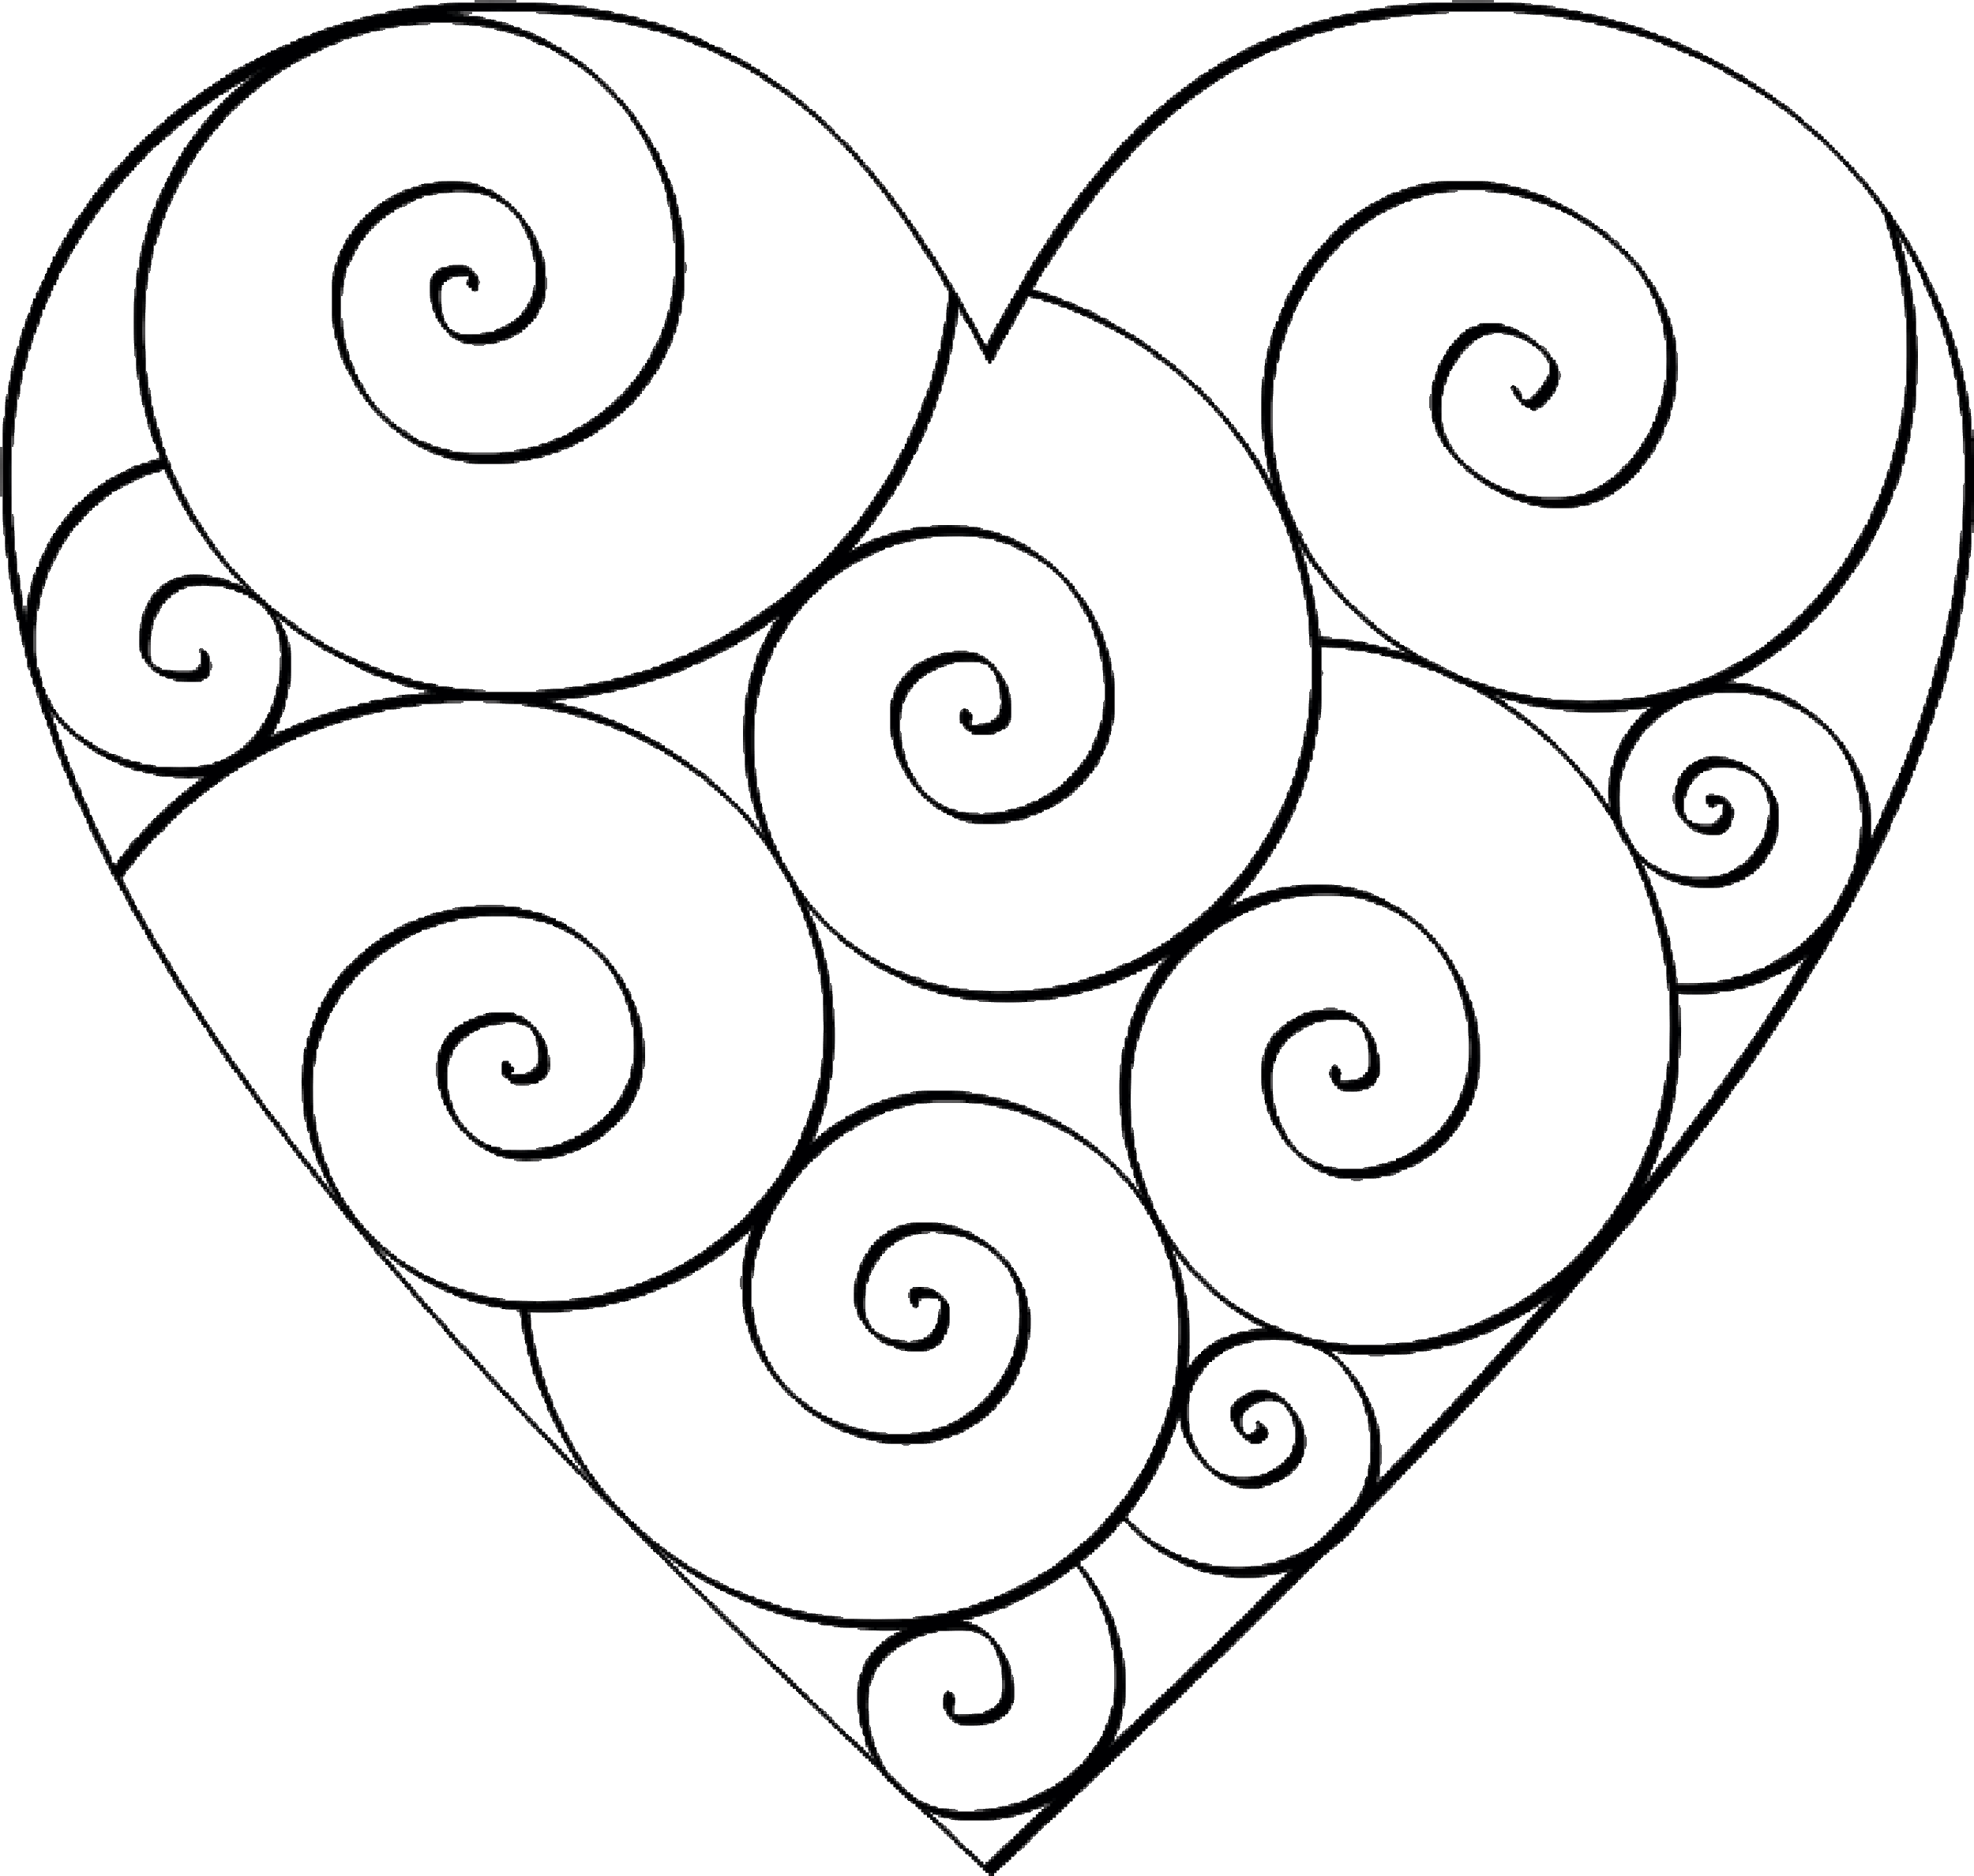 kids heart coloring pages free printable heart coloring pages for kids emoji pages heart coloring kids